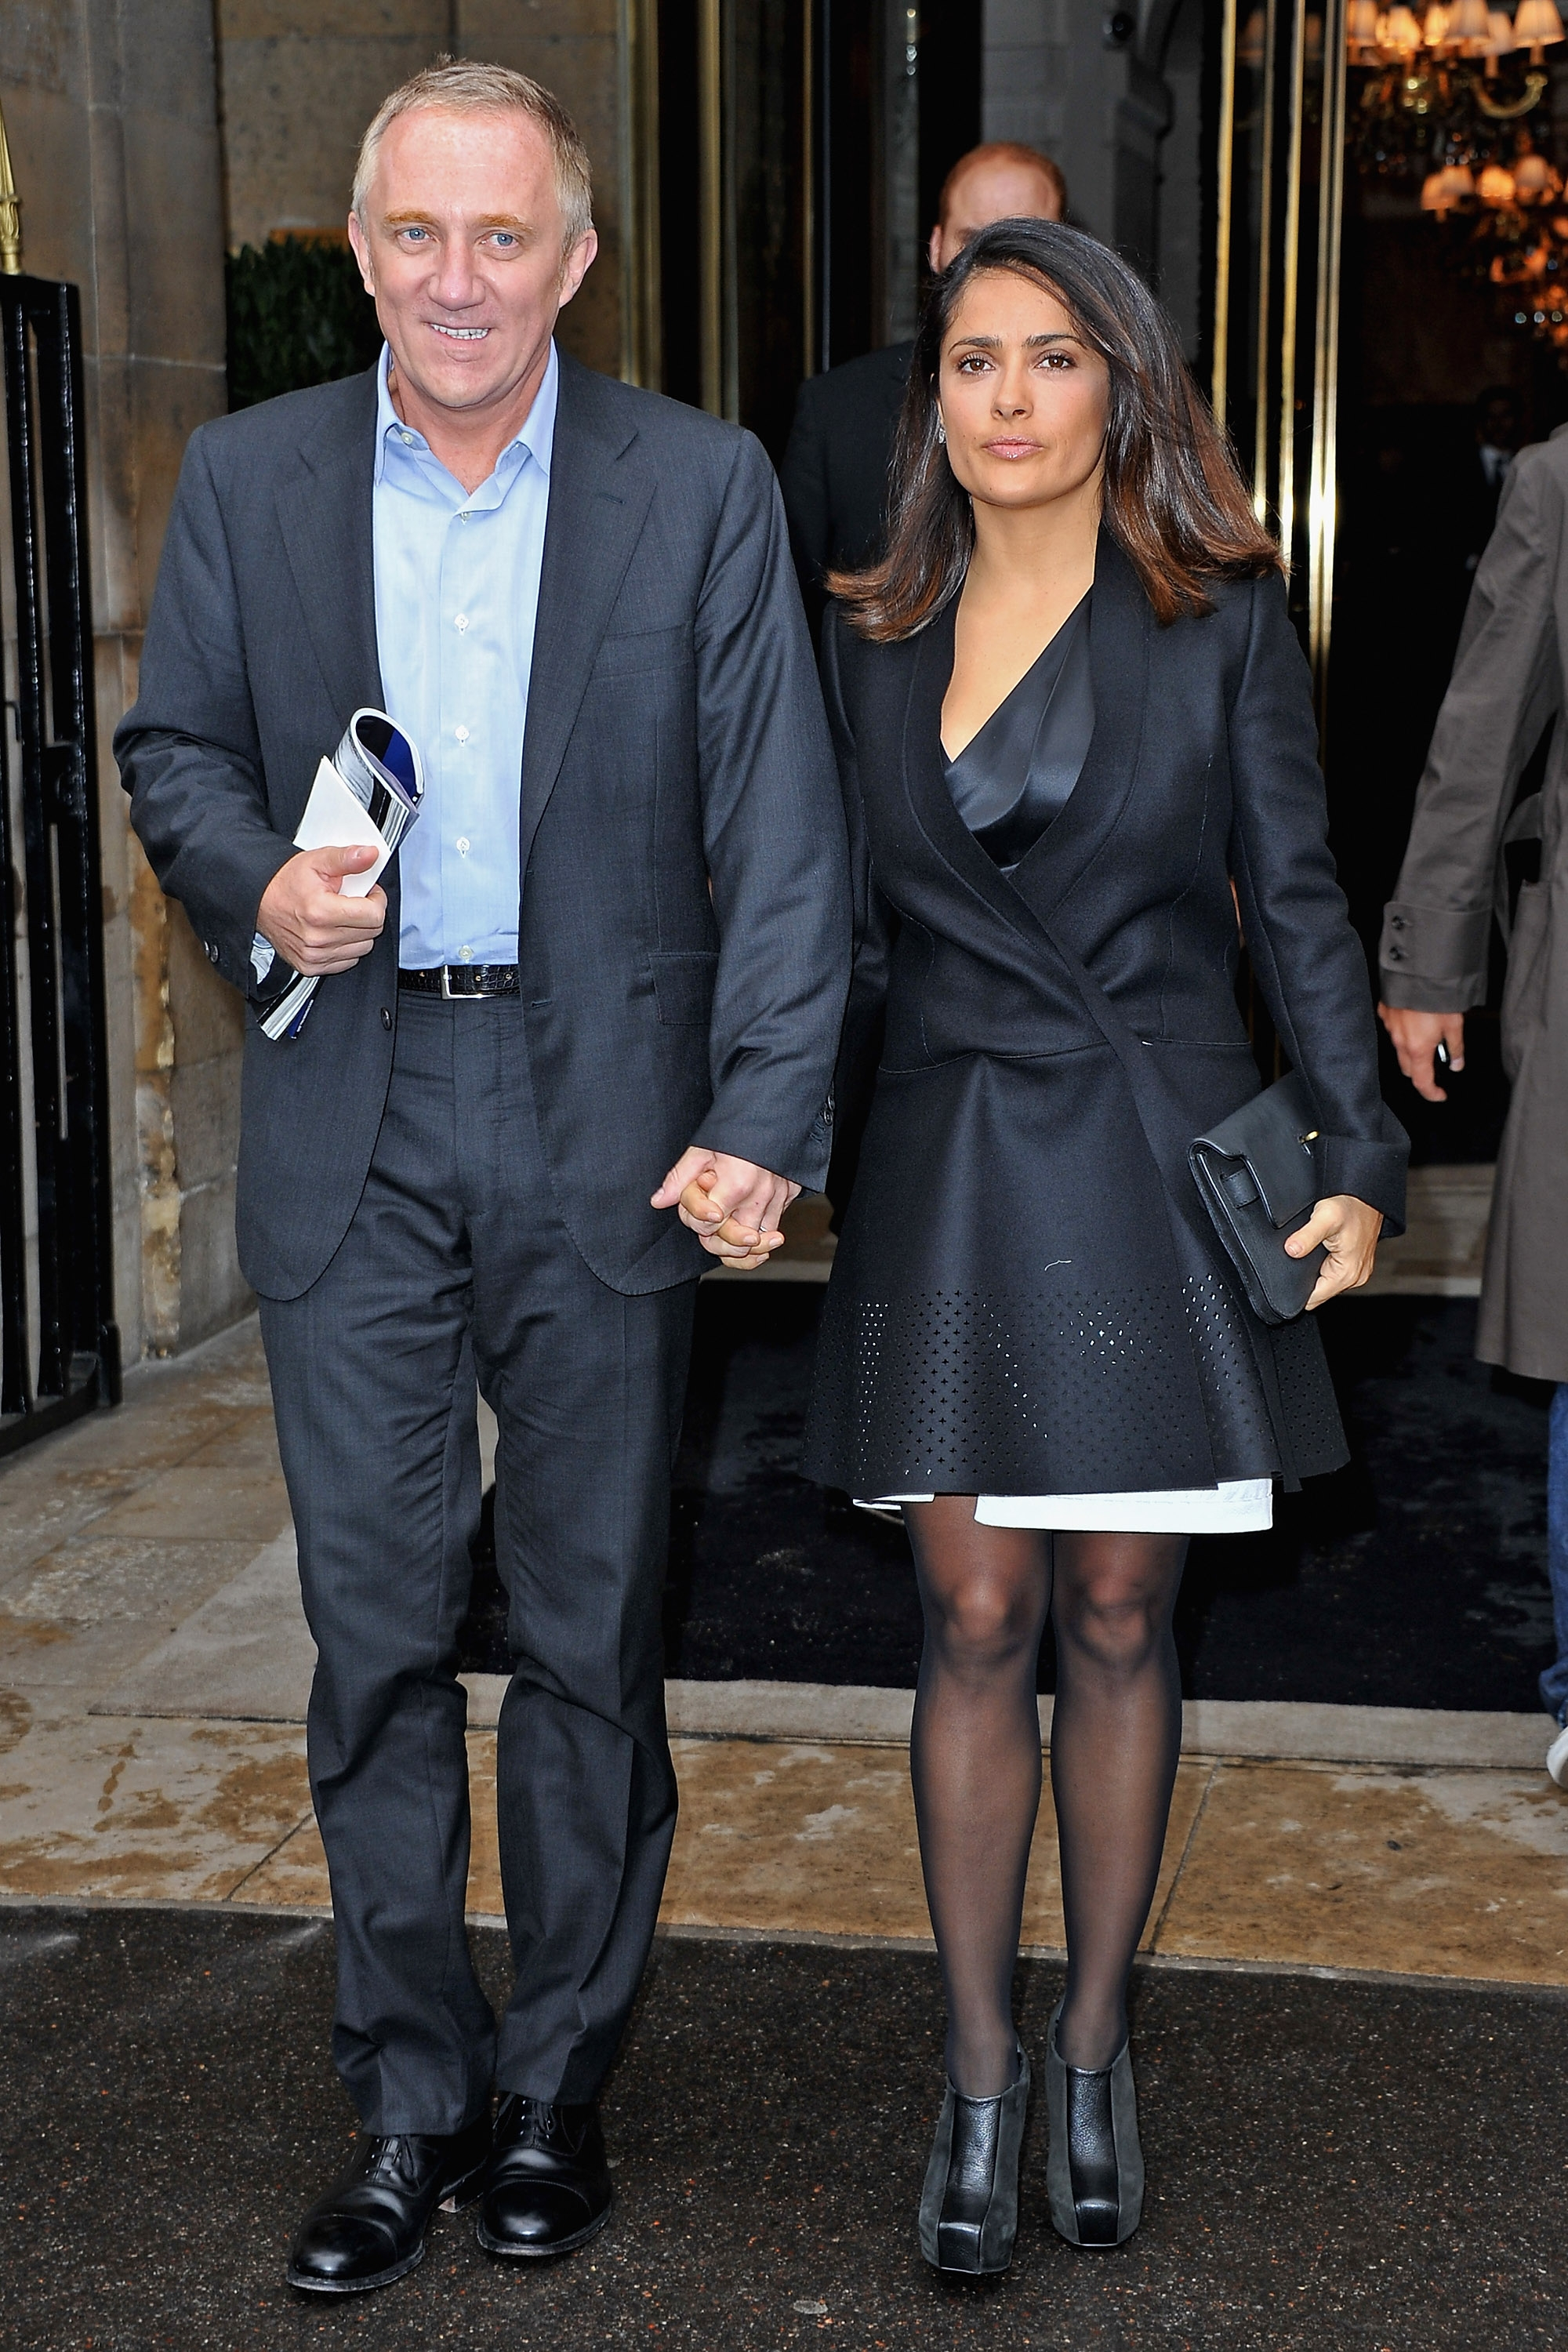 672f5758b Salma Hayek s Husband Surprises Her With A Vow Renewal Ceremony ...